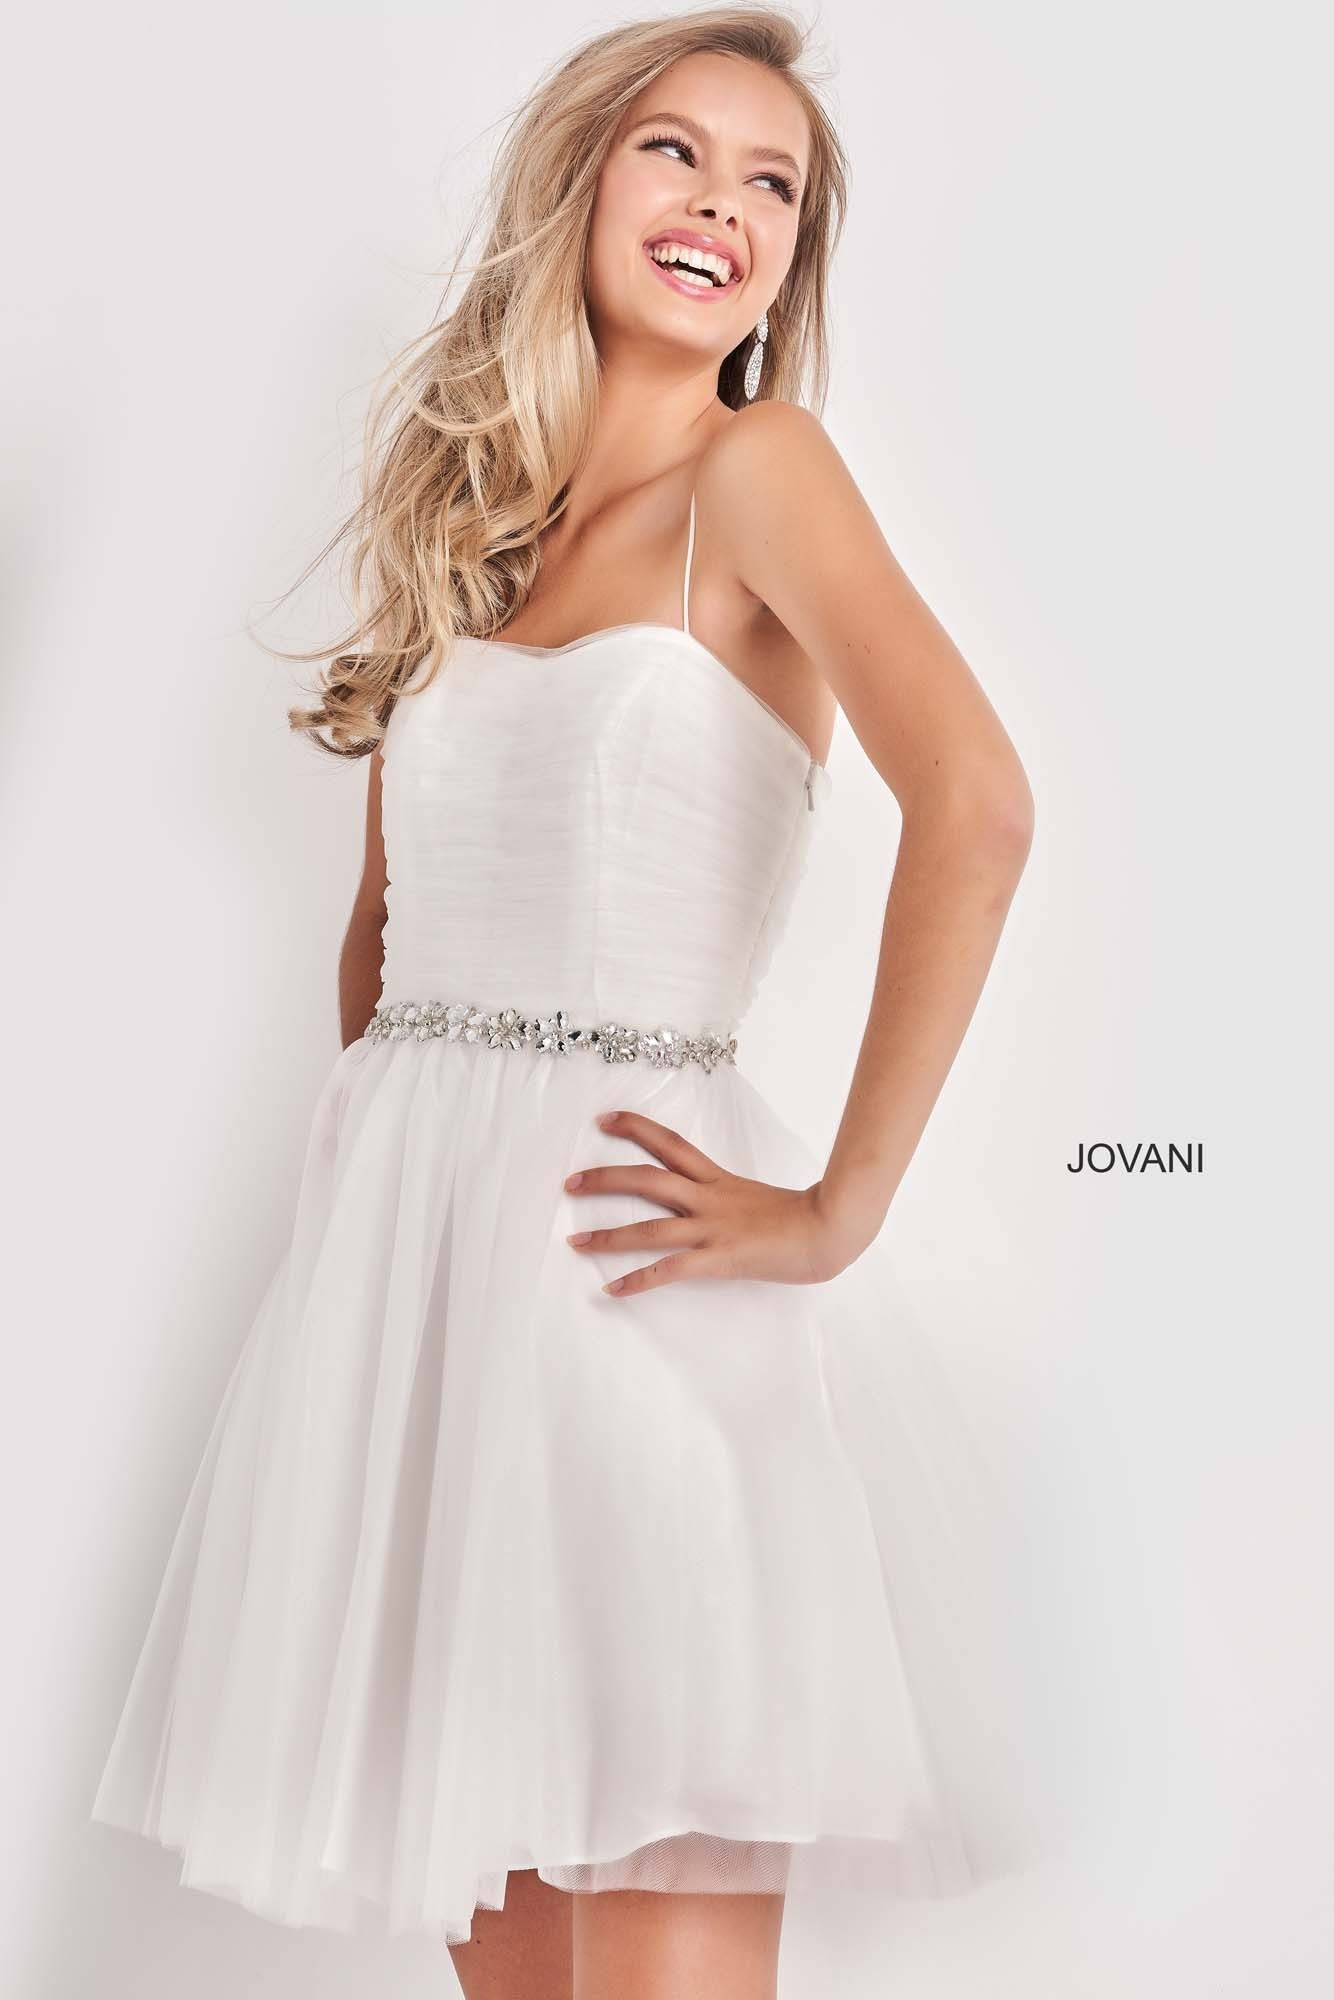 Jovani K4761 Spaghetti Strap Short Girls Dress